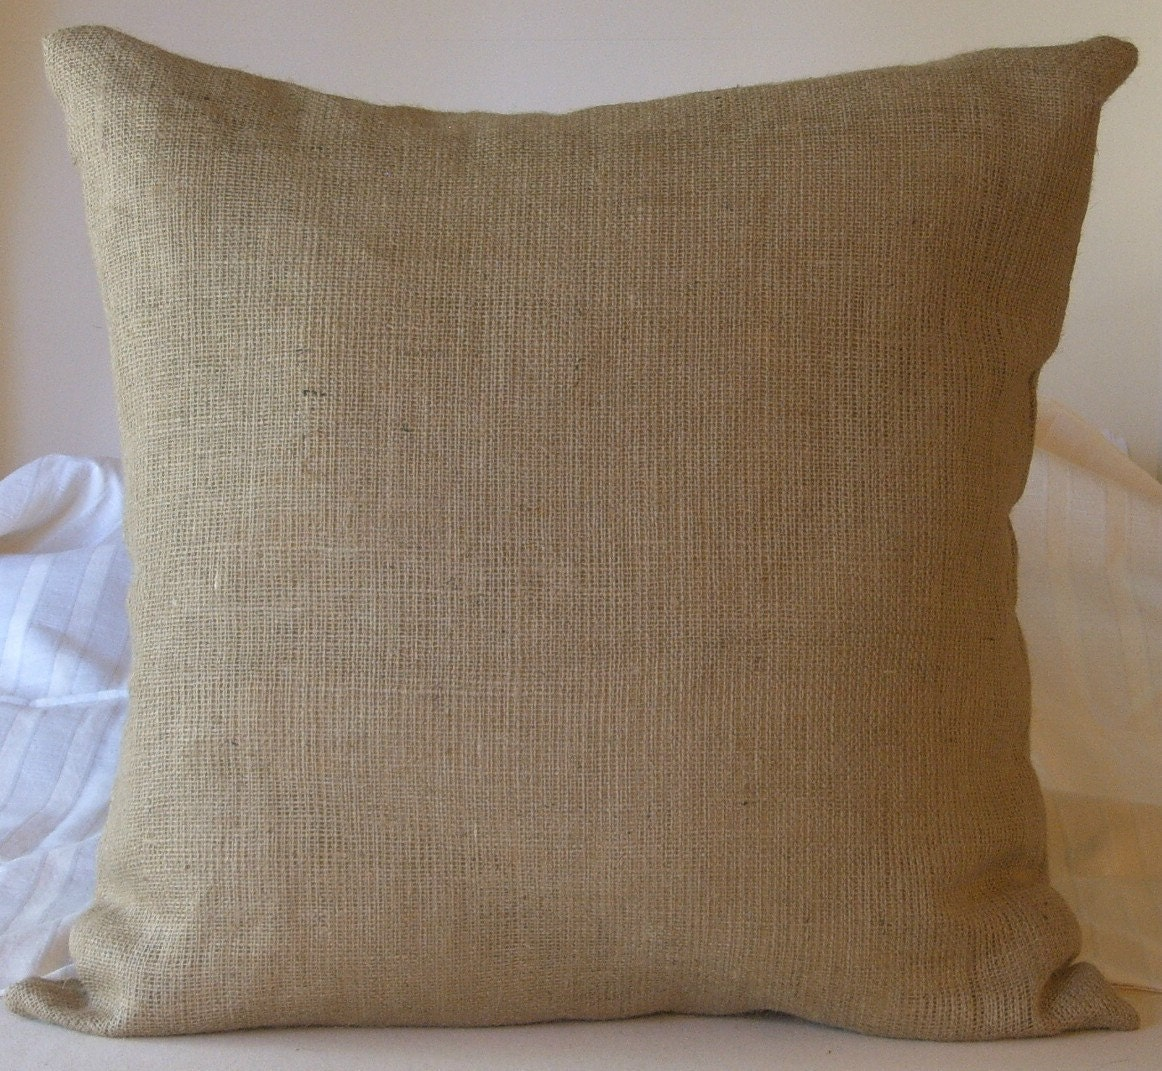 Burlap Euro Shams Pillow Cover 17 X 17 Lined For